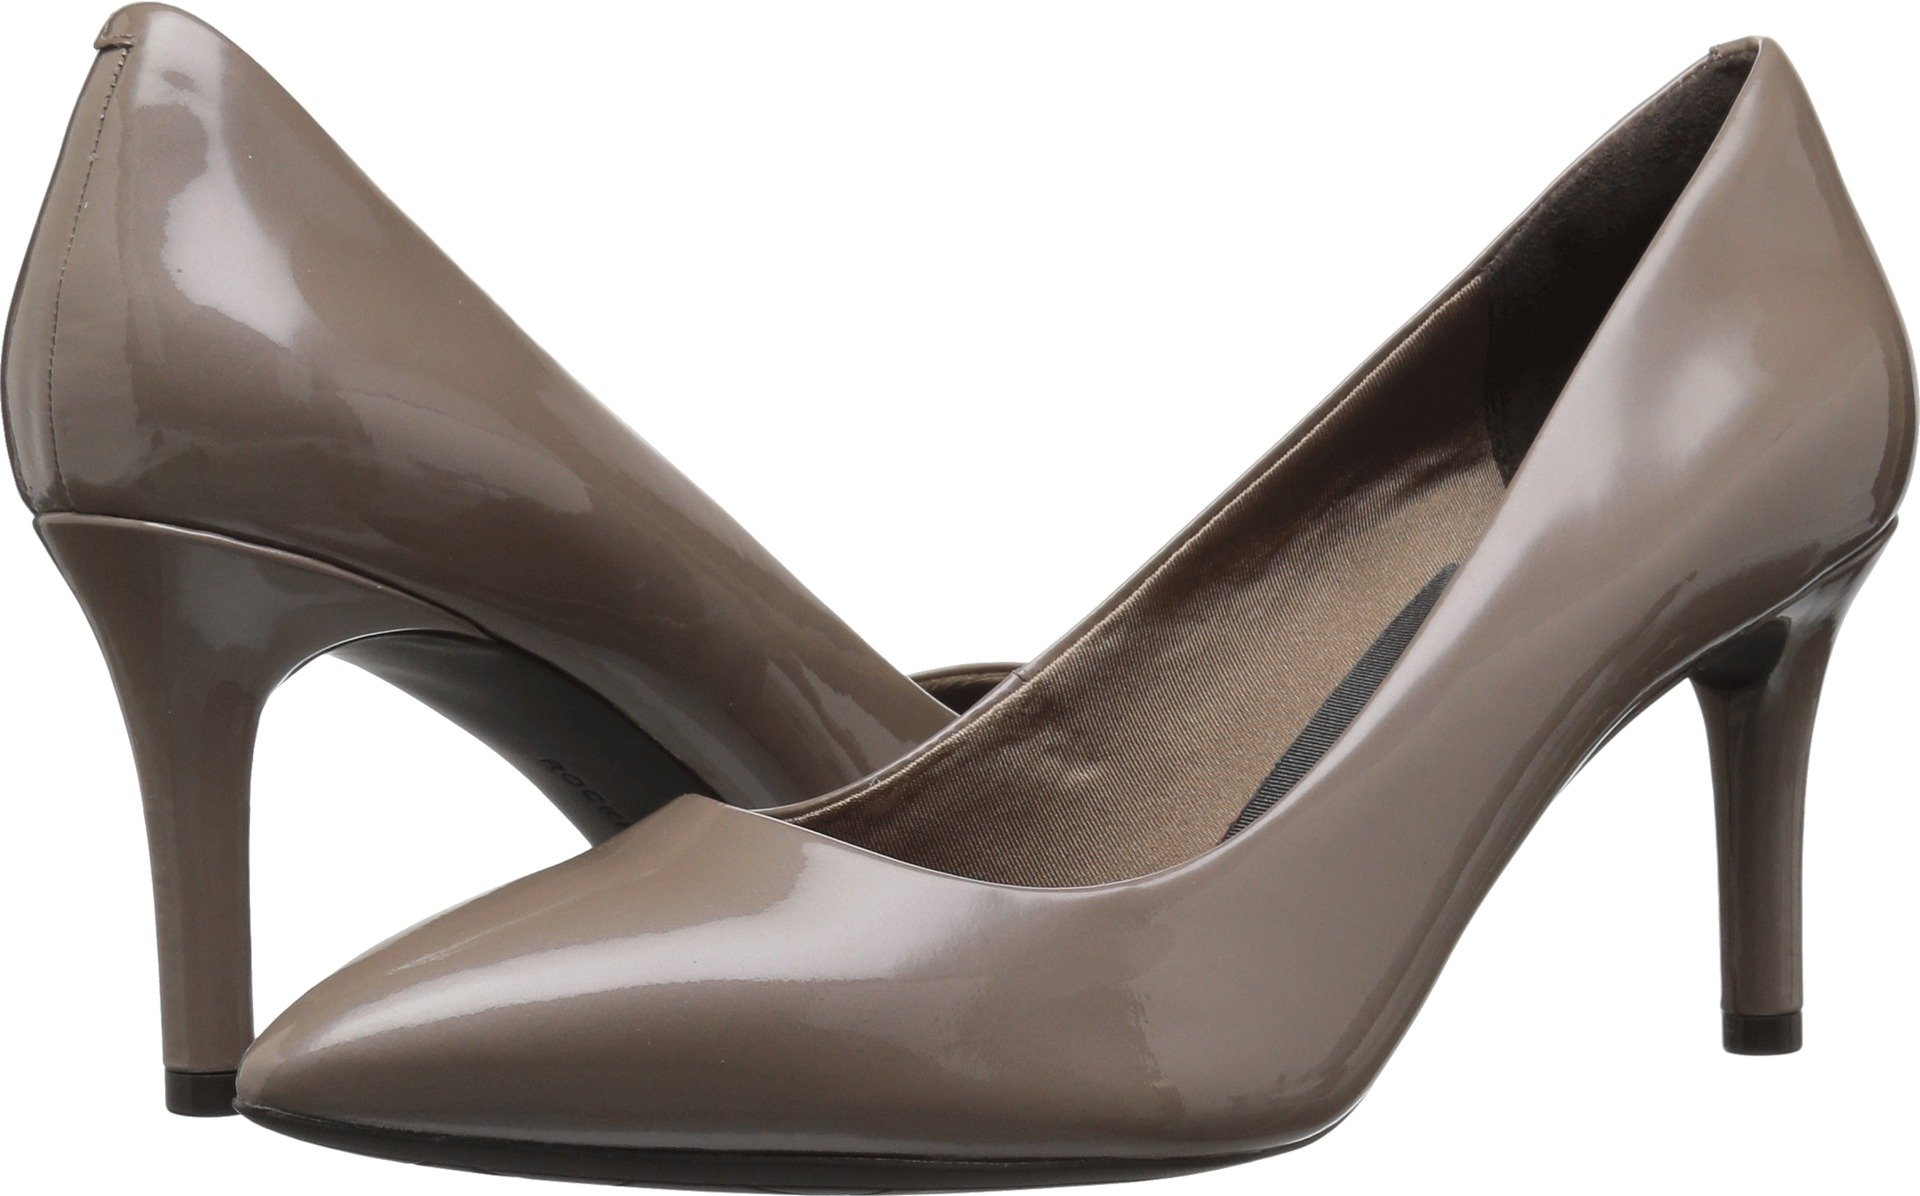 Rockport Women's Total Motion 75mm Pointy Dress Pump, Taupe Grey Patent, 6.5 W US